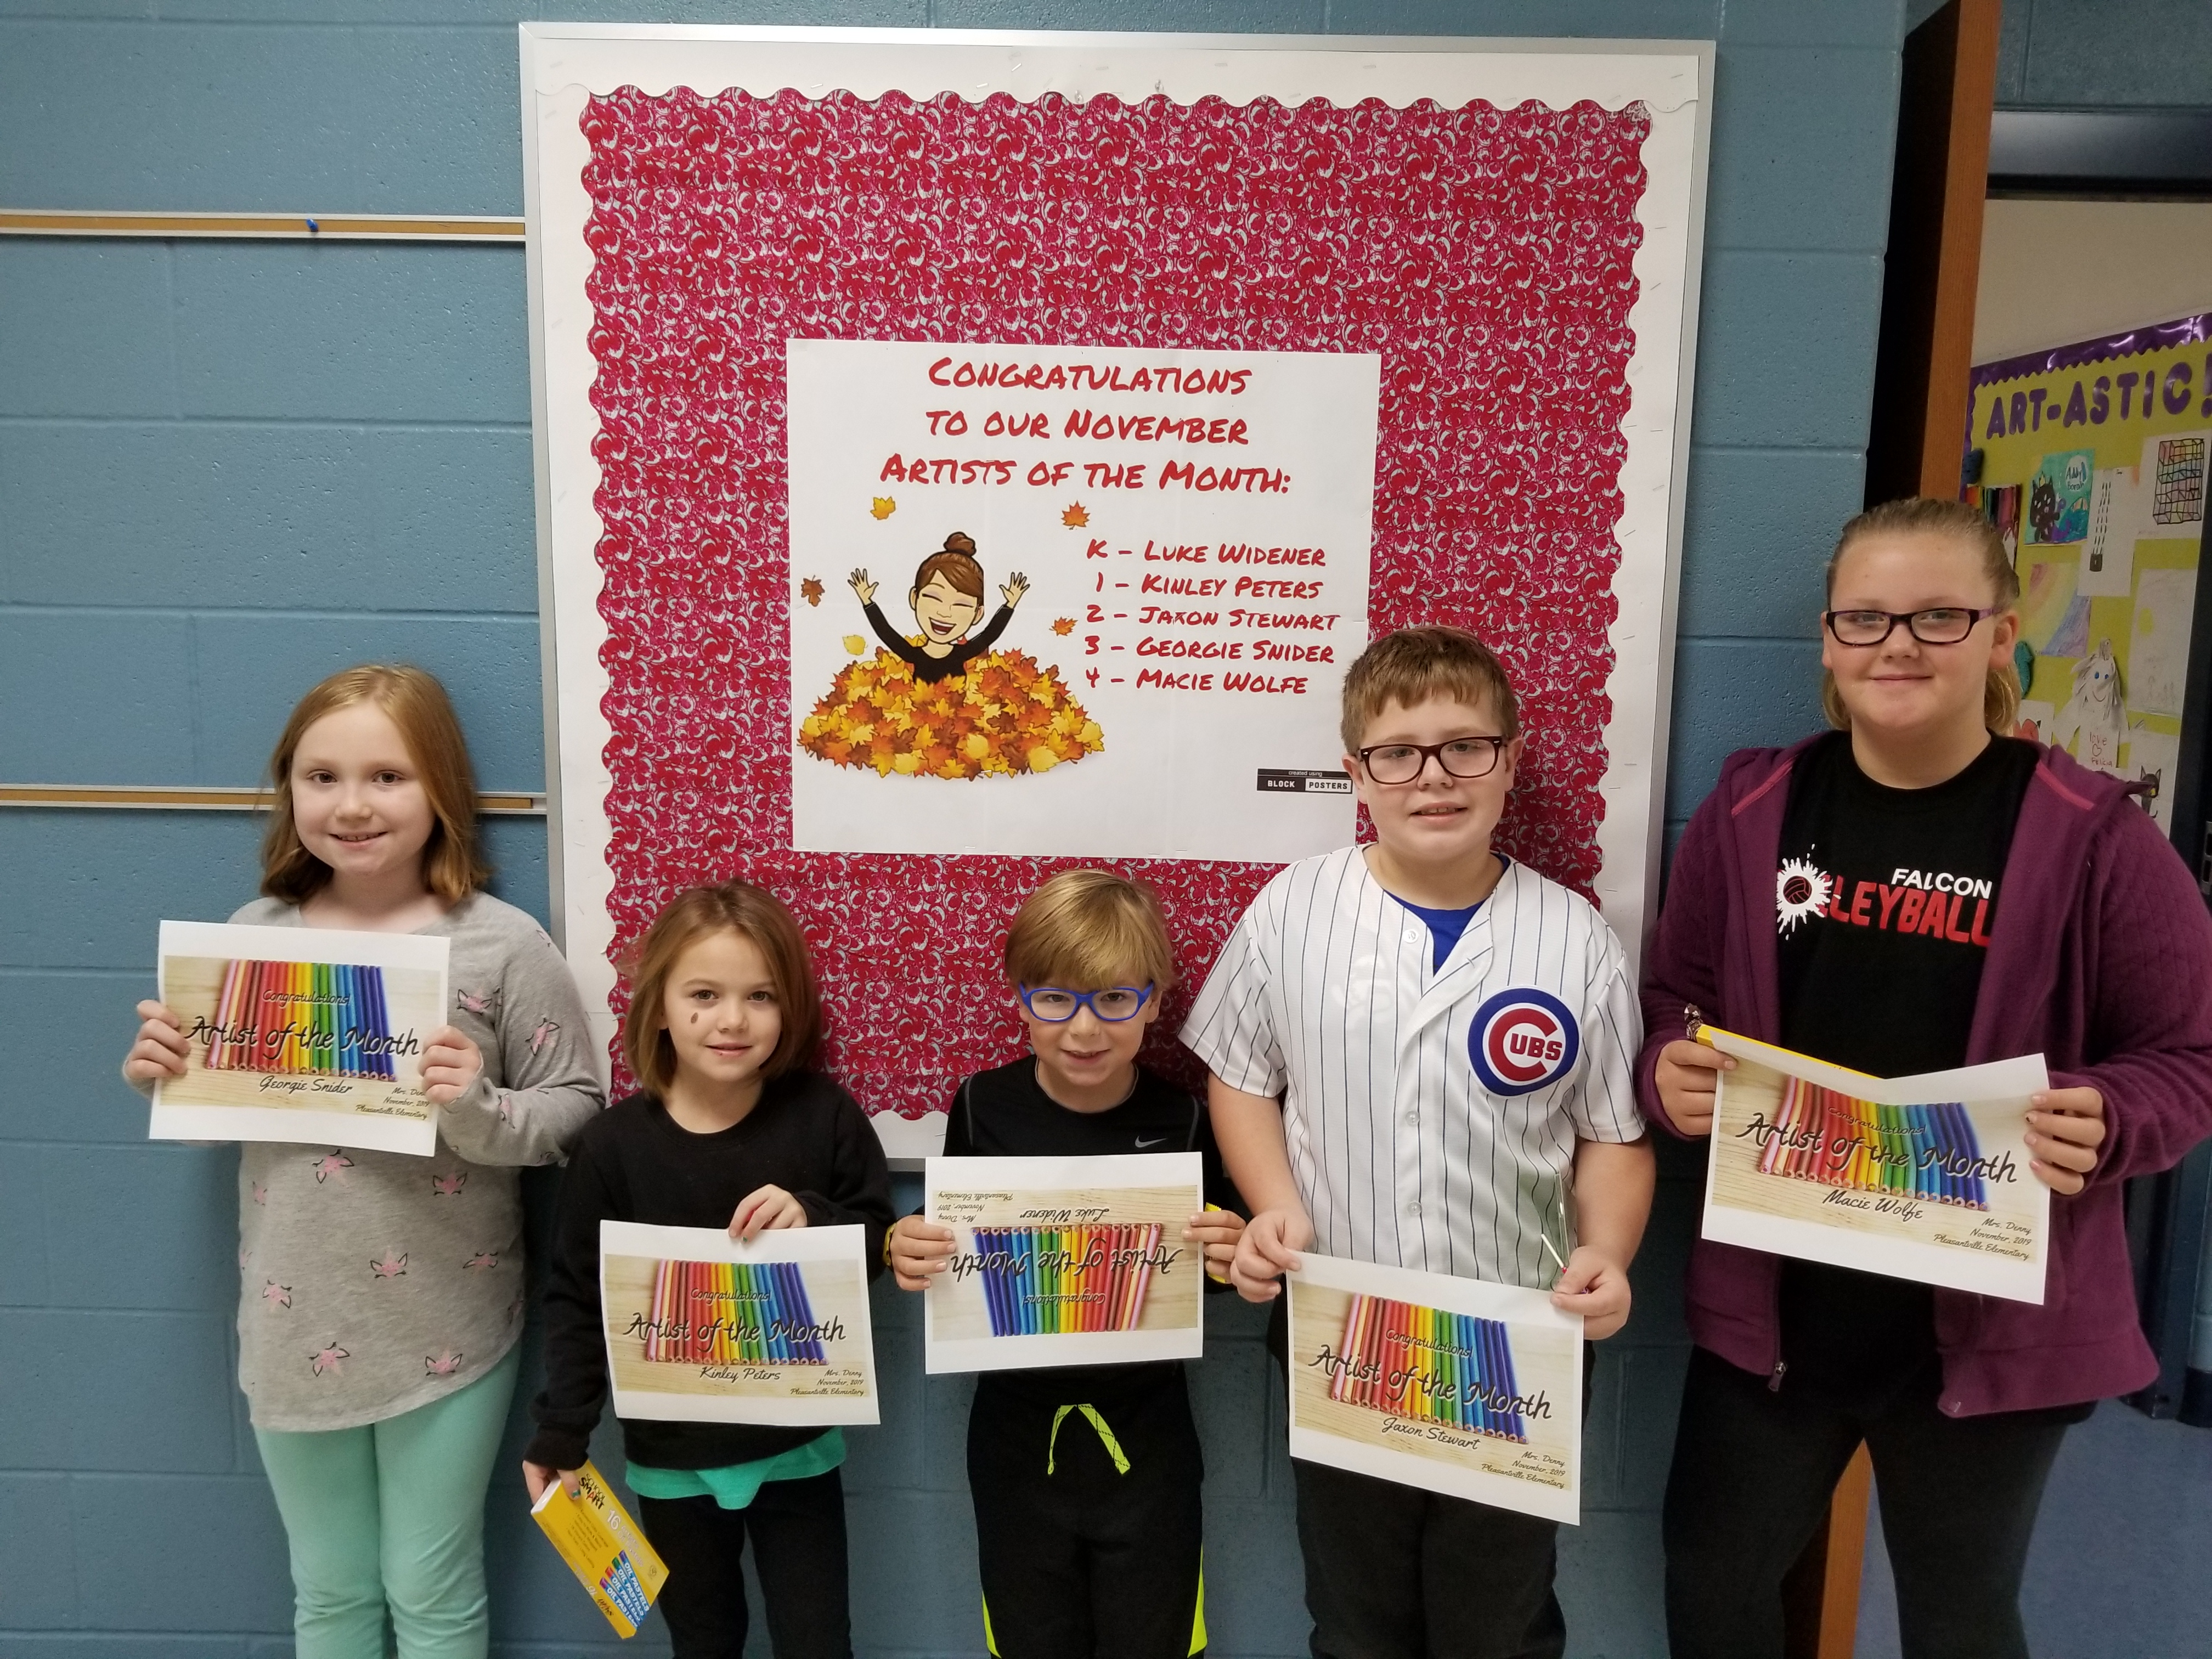 picture of artists of the month for November